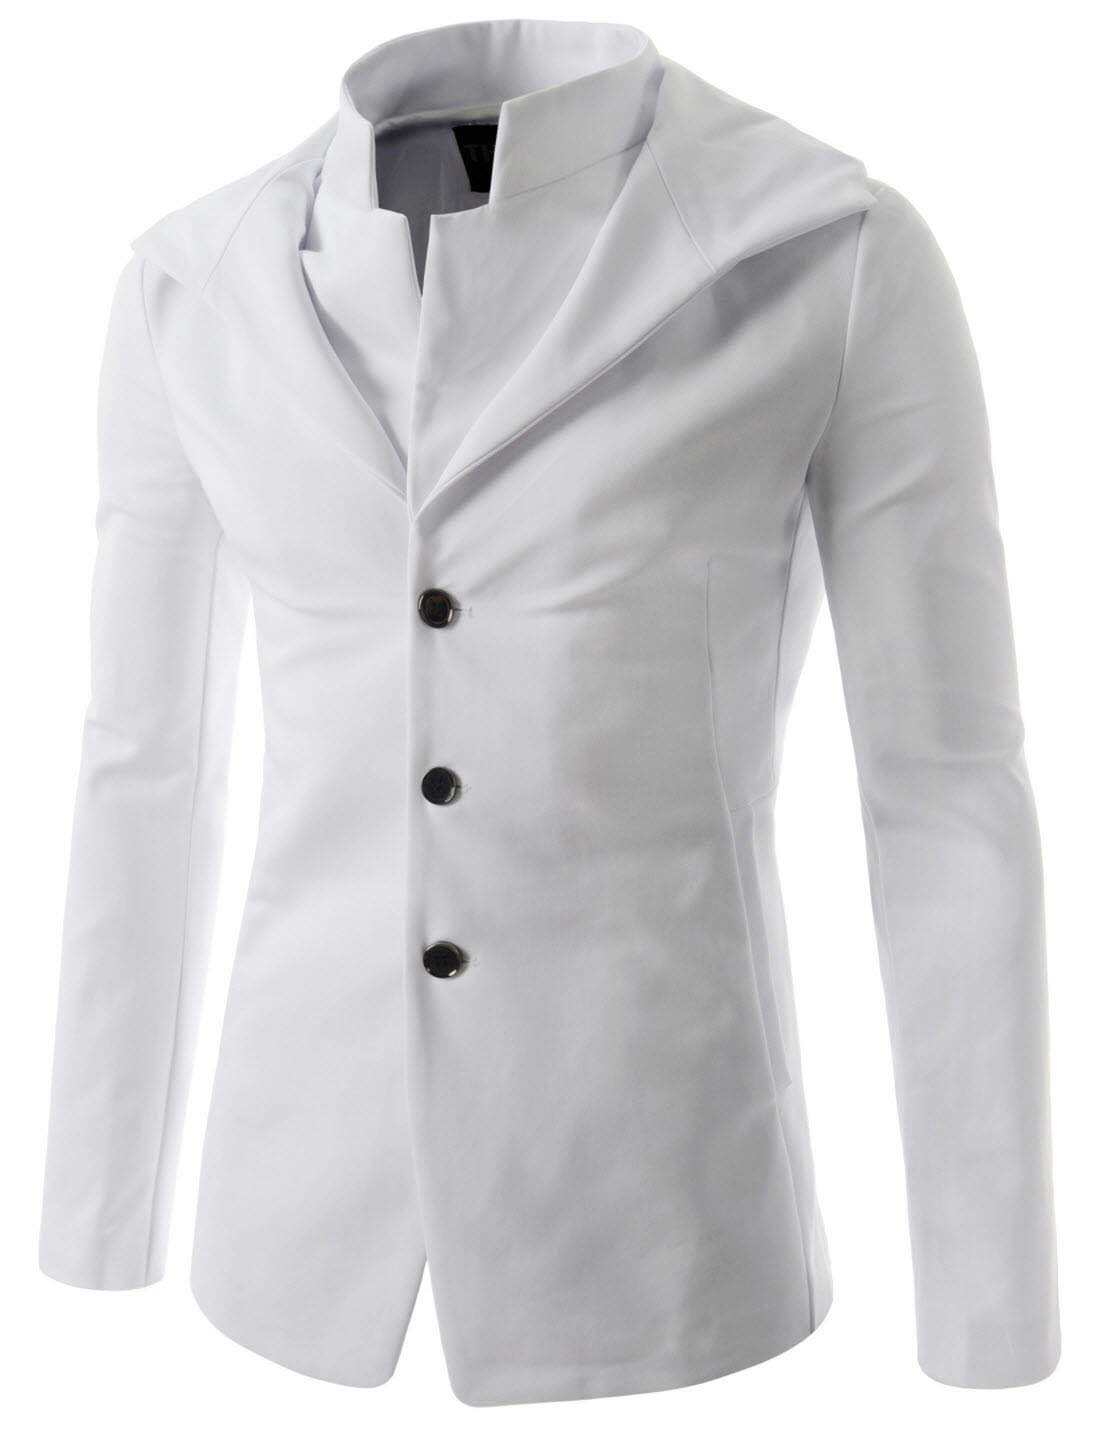 (NJK151) Mens Slim Fit Hooded Blazer Stylish Double Collar Sports Coat Jacket WHITE US XS(Tag size L)